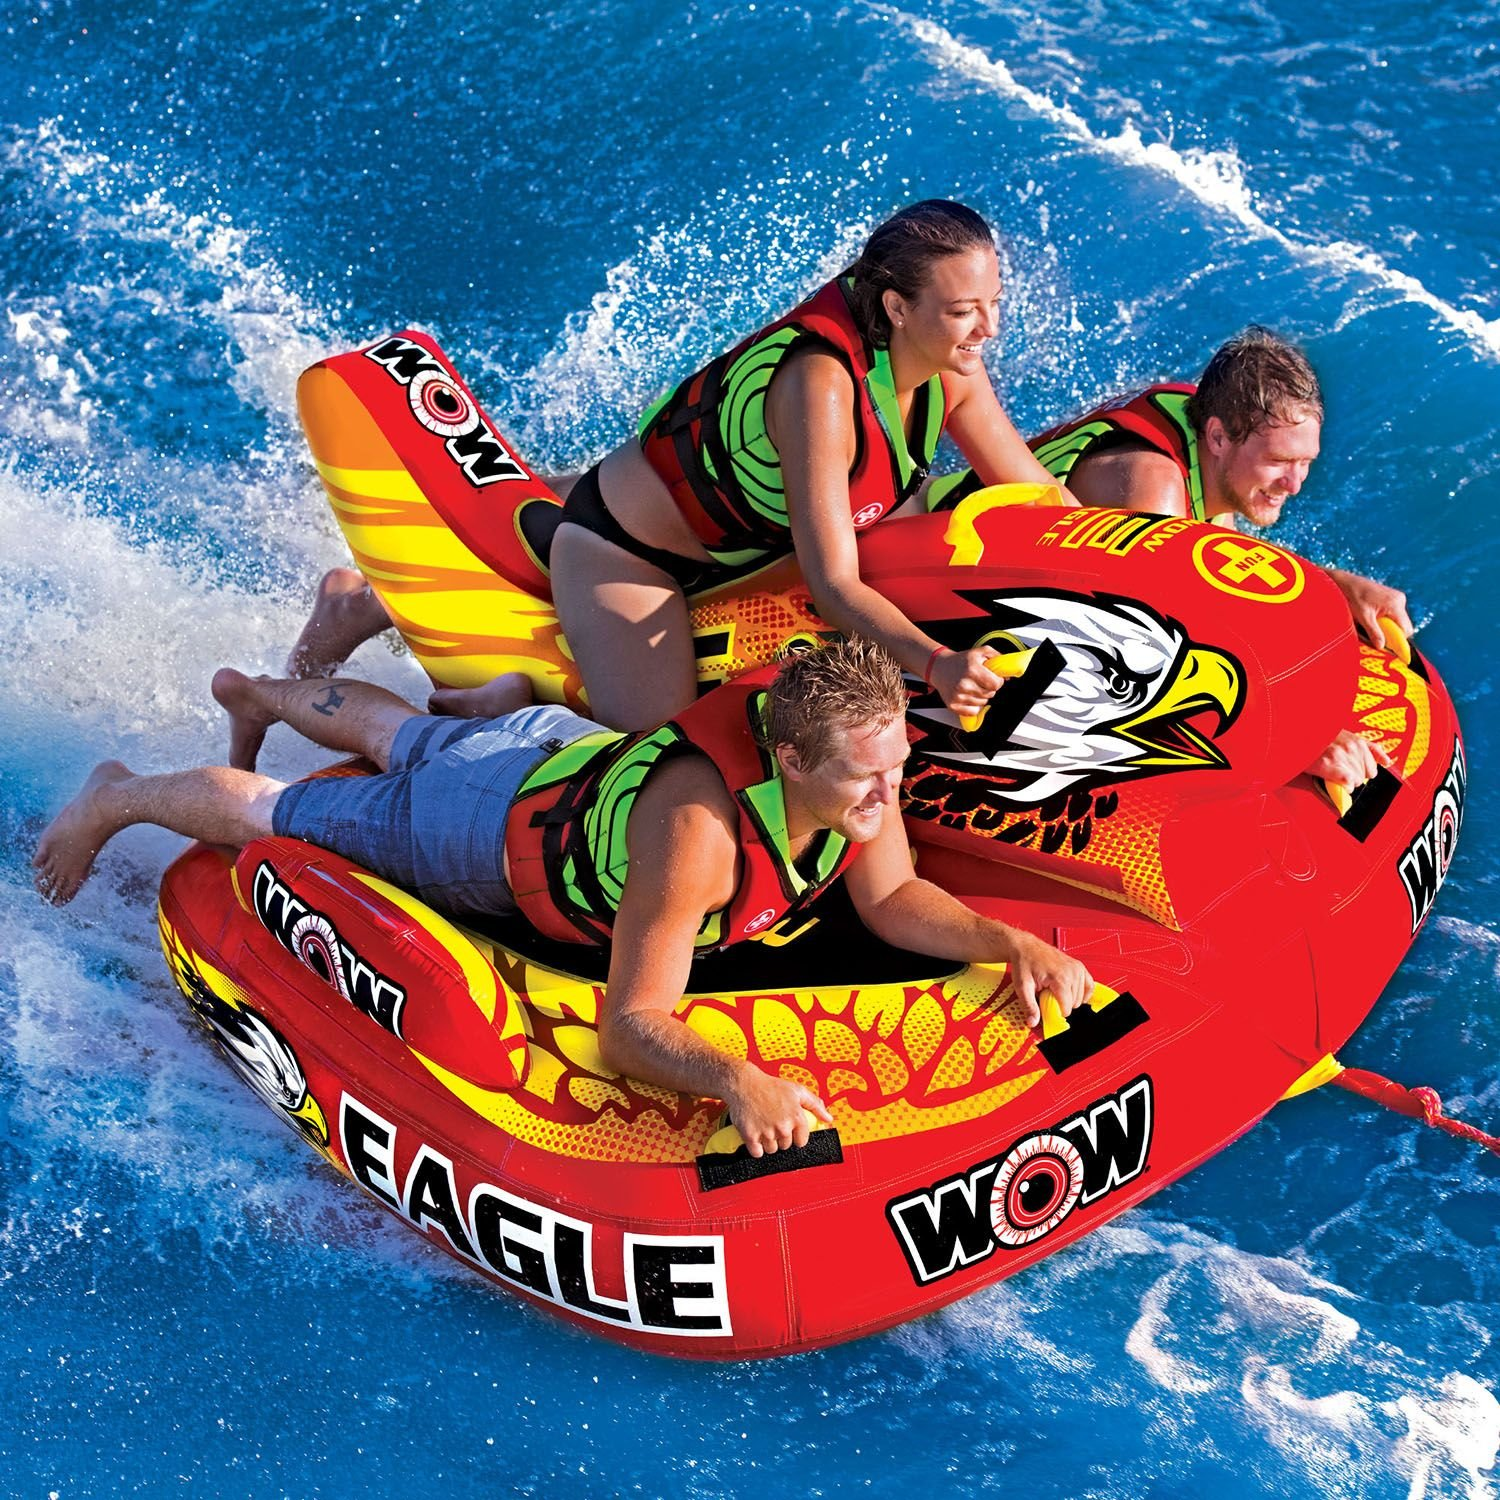 Amazon WOW Eagle Inflatable Towable Tube Lake Water Raft